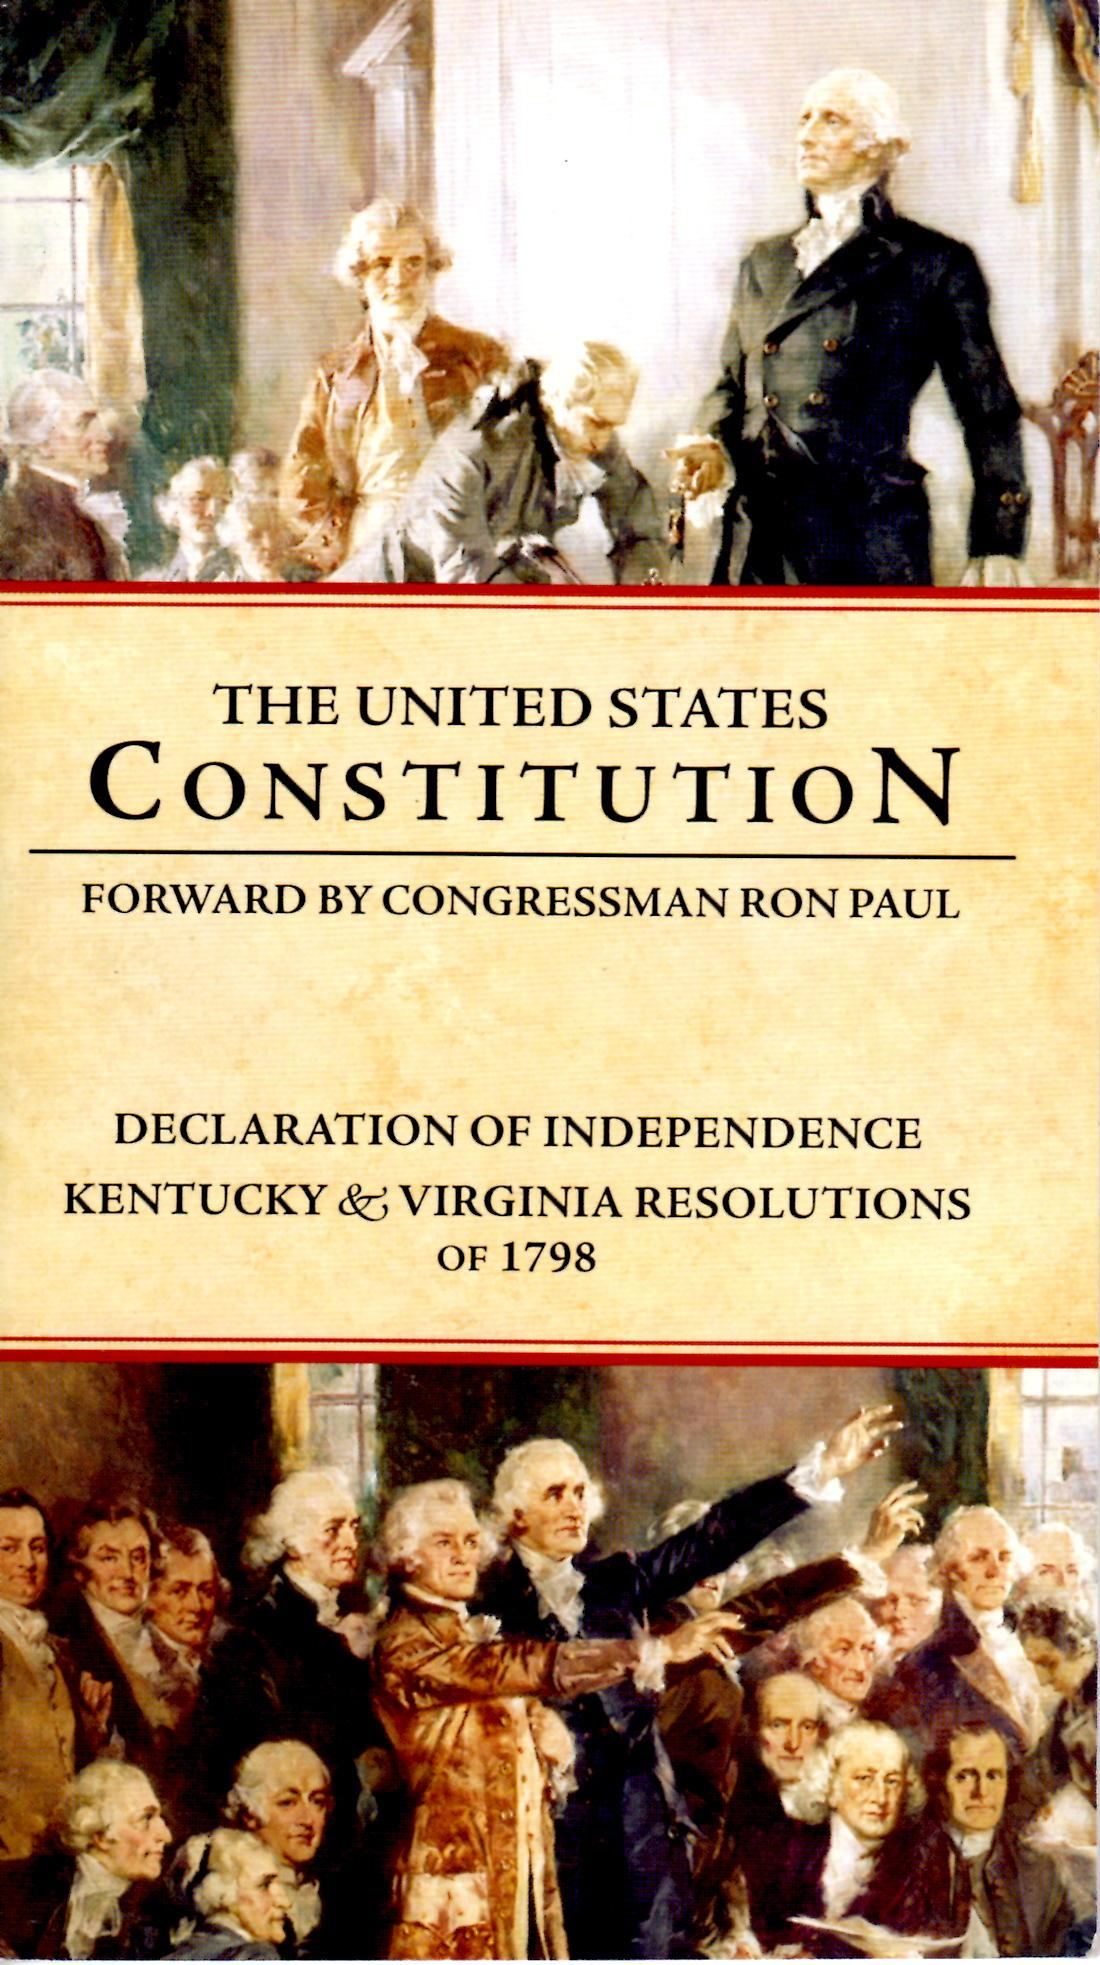 an introduction to the history of the united states constitution The constitution of the united states of america is the supreme law of the united  states empowered with the sovereign authority of the people by the frame.